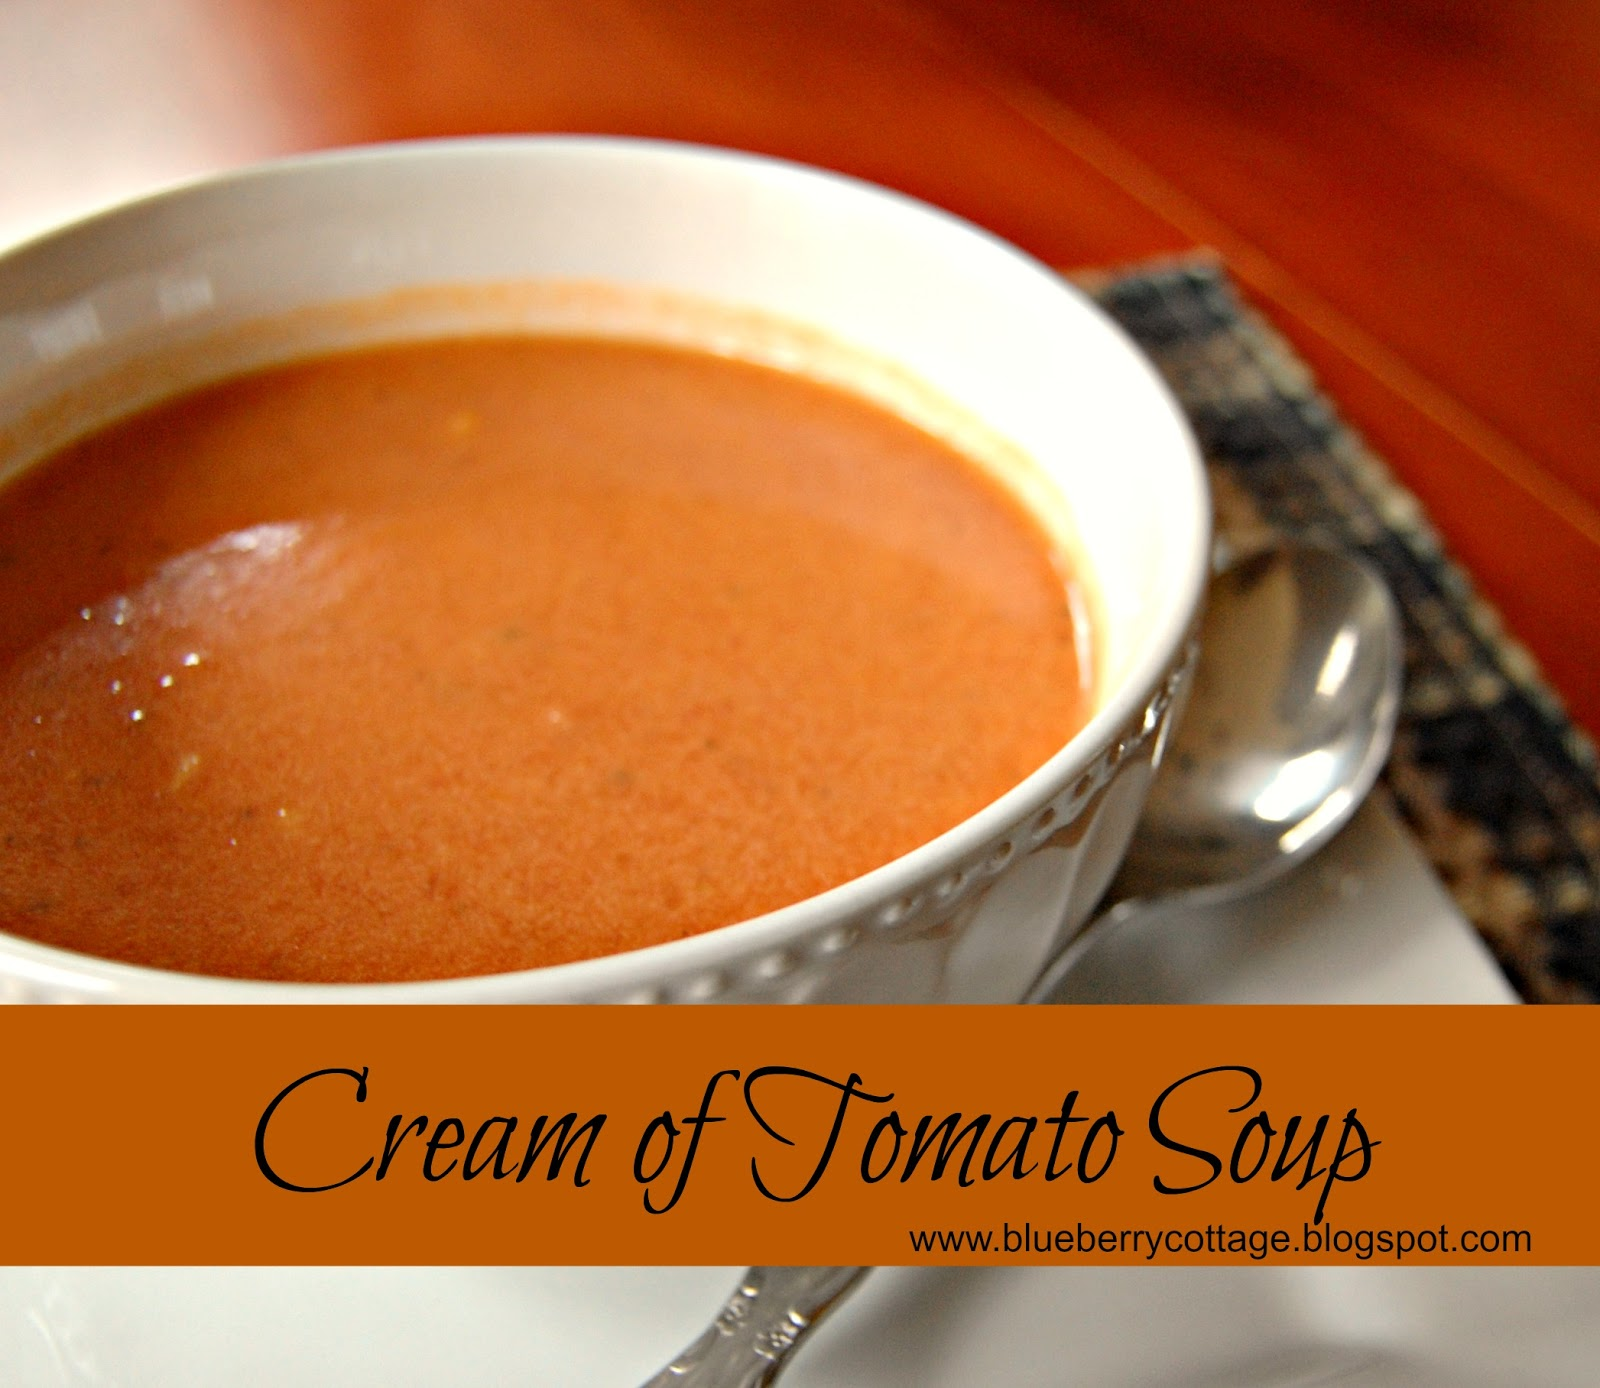 Blueberry Cottage: Our Cream of Tomato Soup